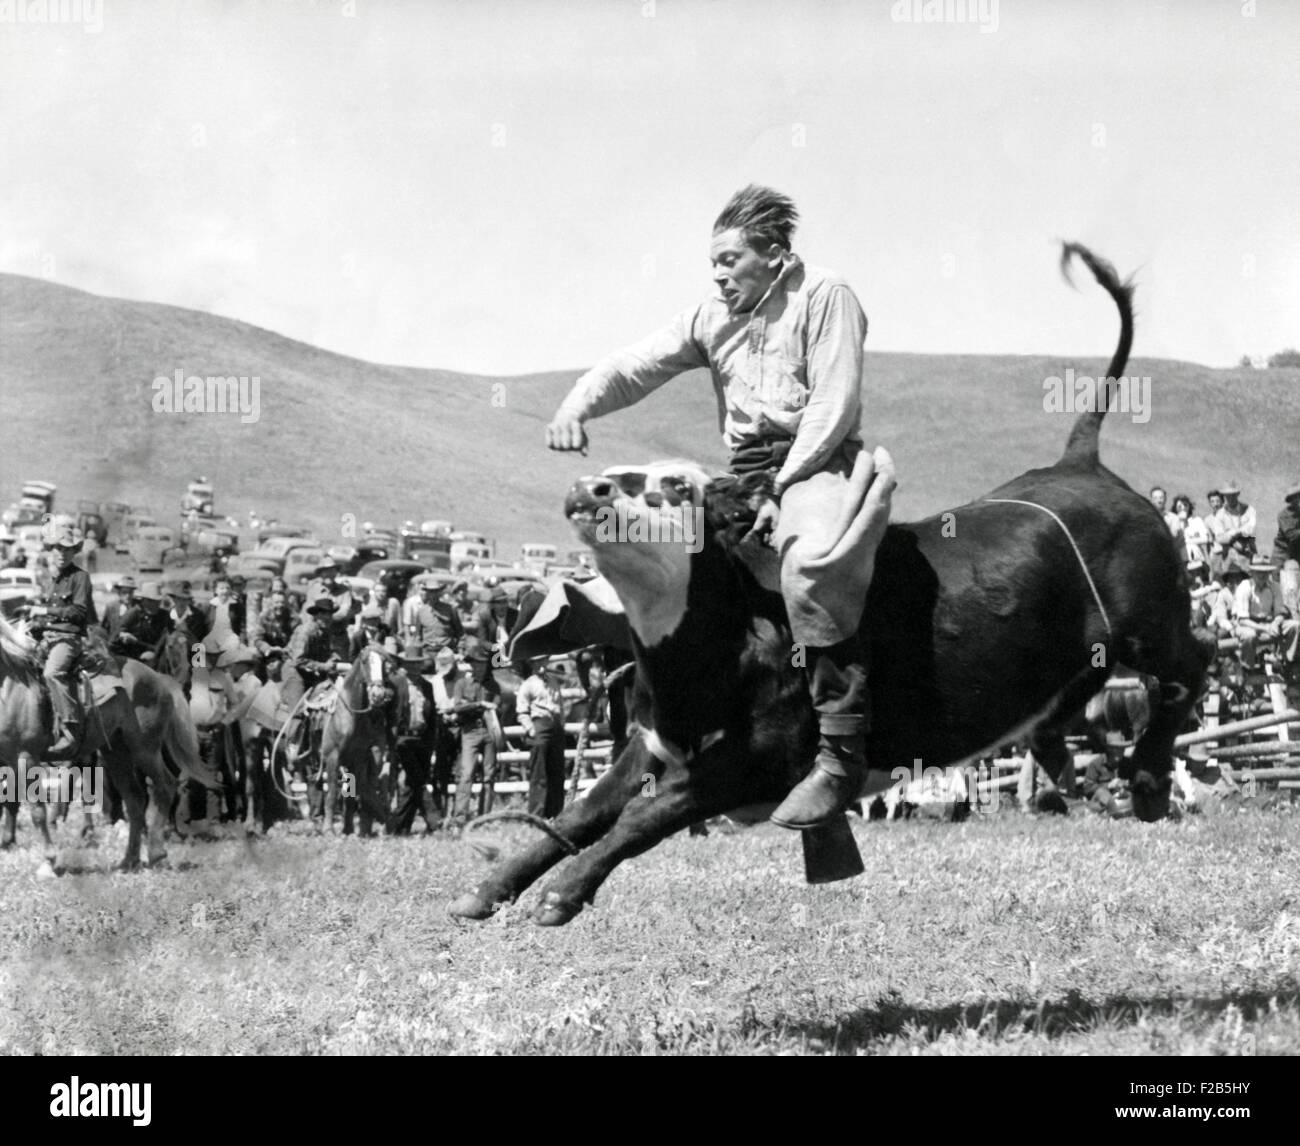 Bull Rider at American Rodeo. Ca. 1950. - (BSLOC_2014_17_112) - Stock Image